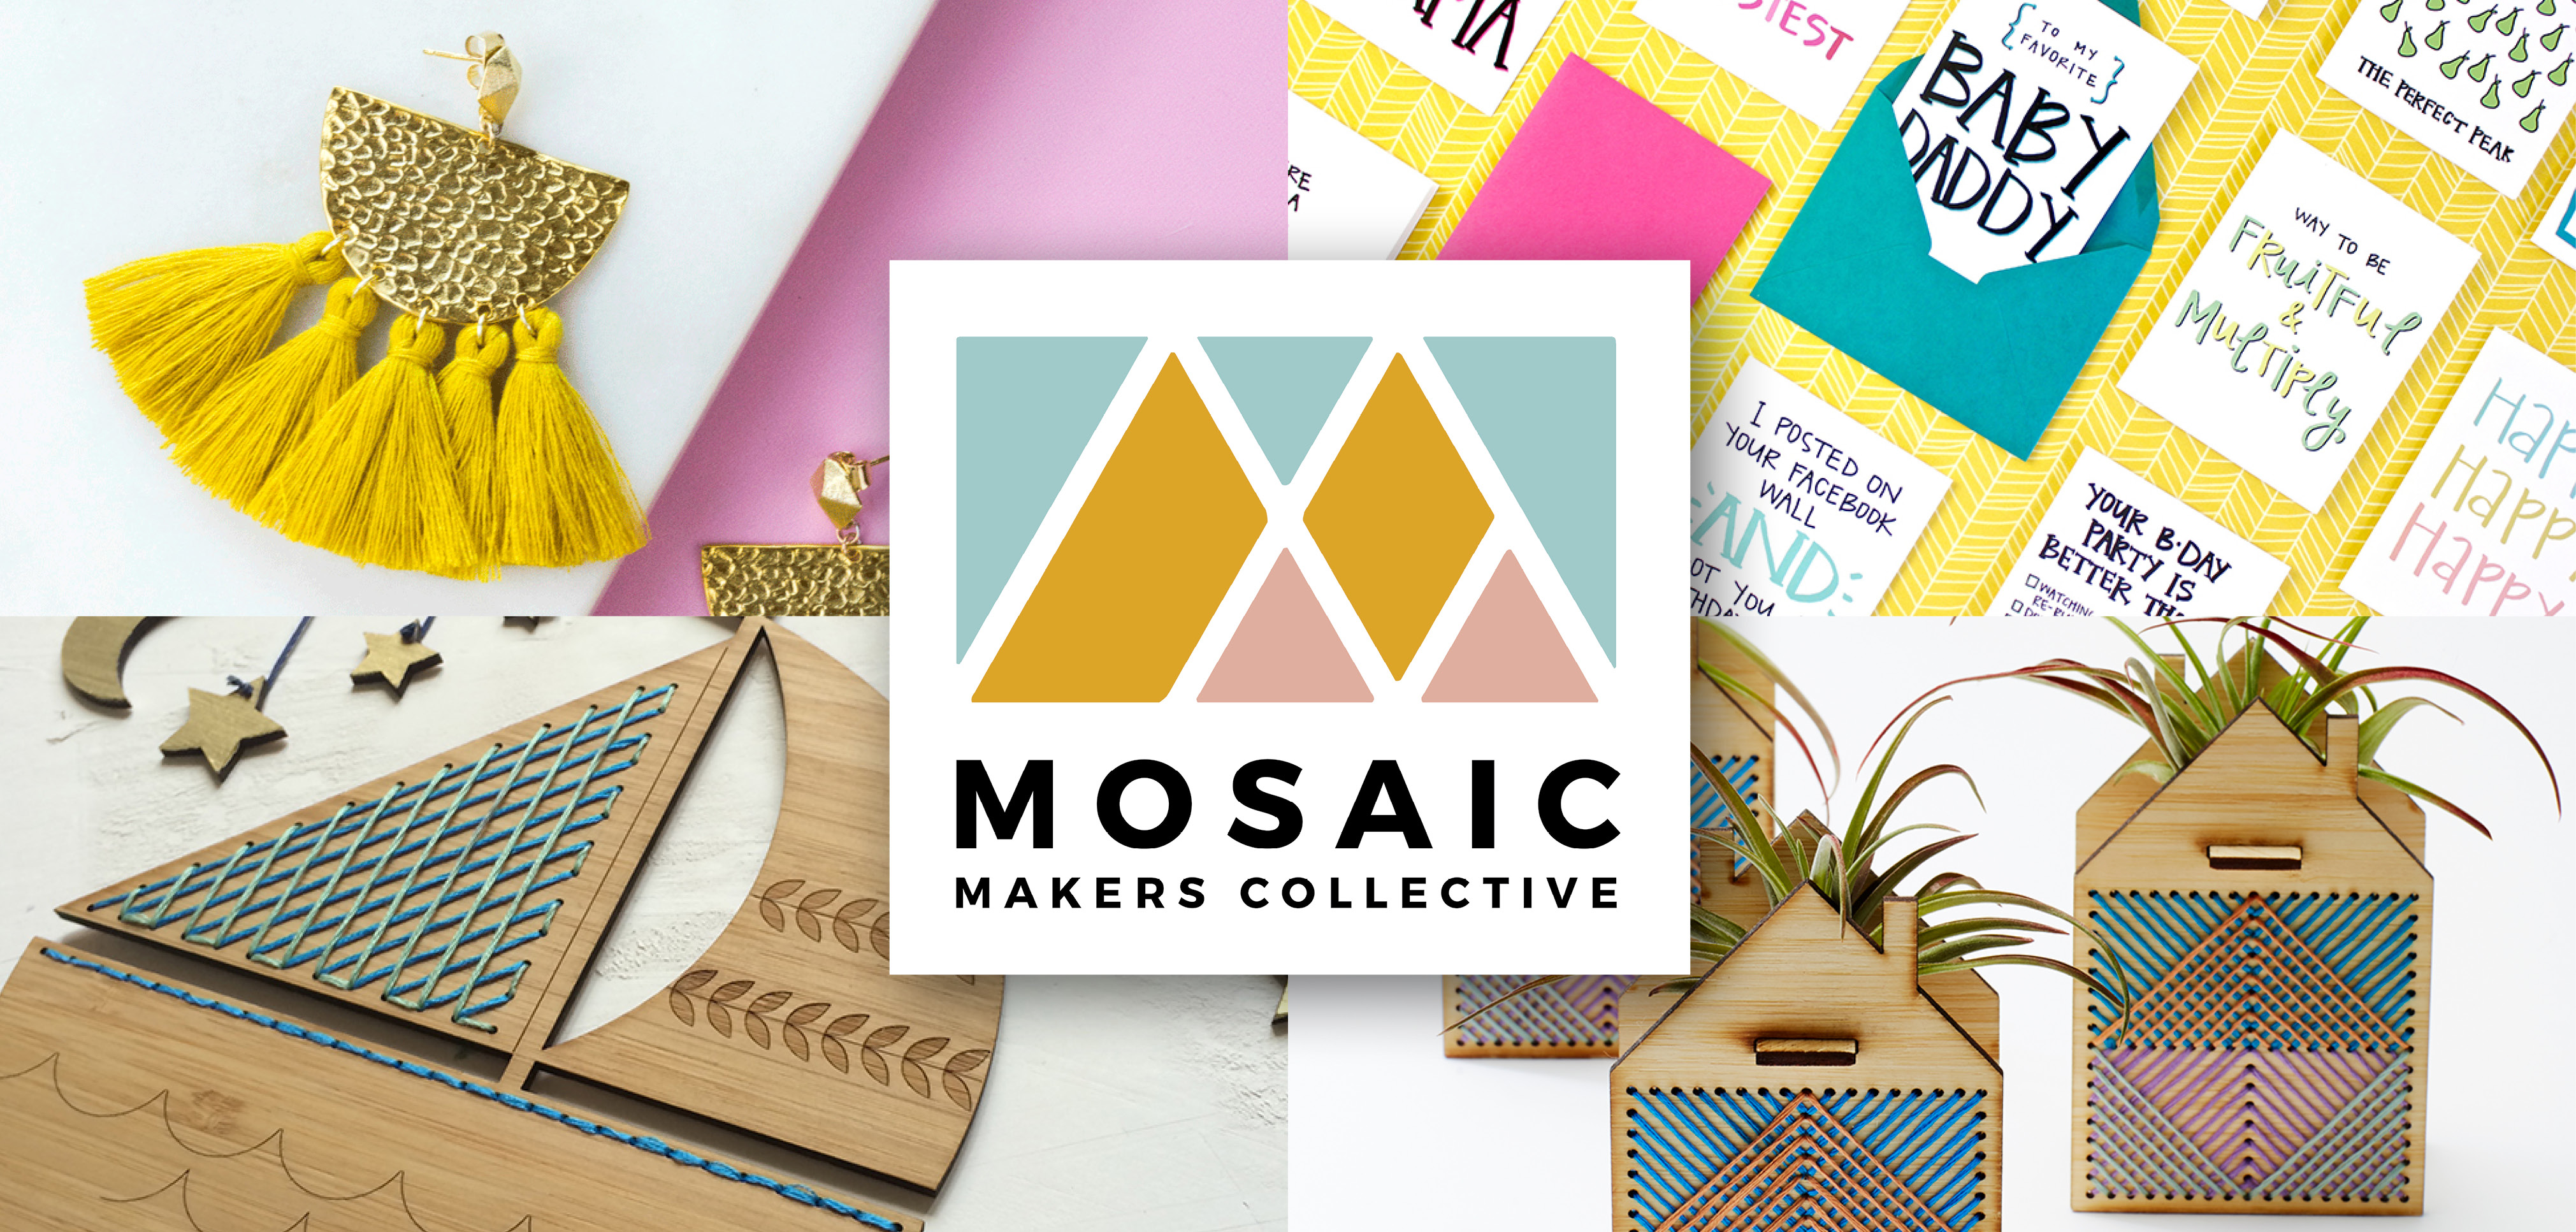 mosaic makers collective